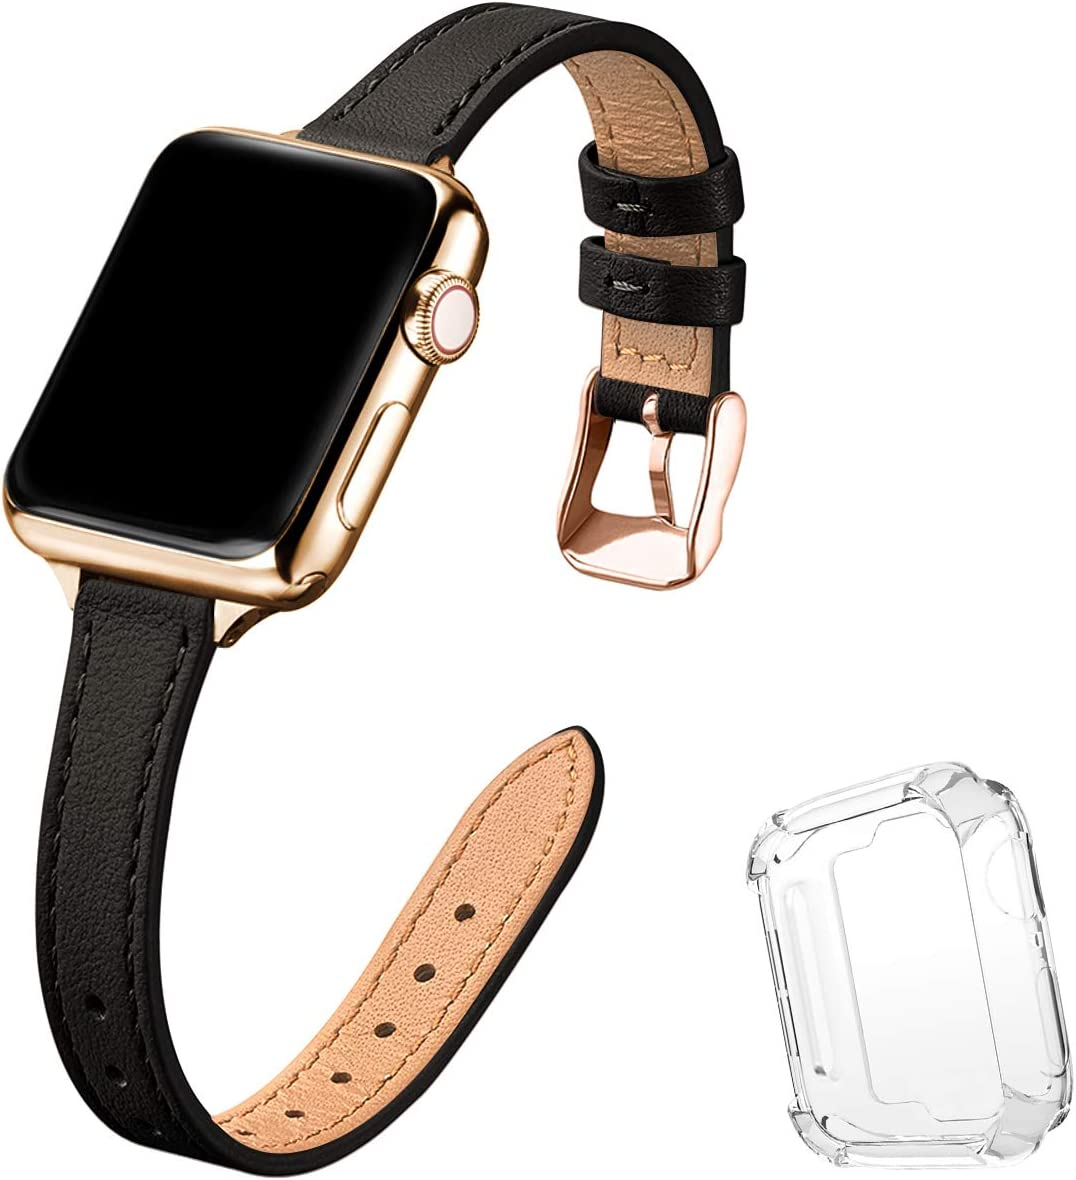 STIROLL Slim Leather Bands Compatible with Apple Watch Band 38mm 40mm 42mm 44mm, Top Grain Leather Watch Thin Wristband for iWatch SE Series 6/5/4/3/2/1 (Black with Gold, 38mm/40mm)